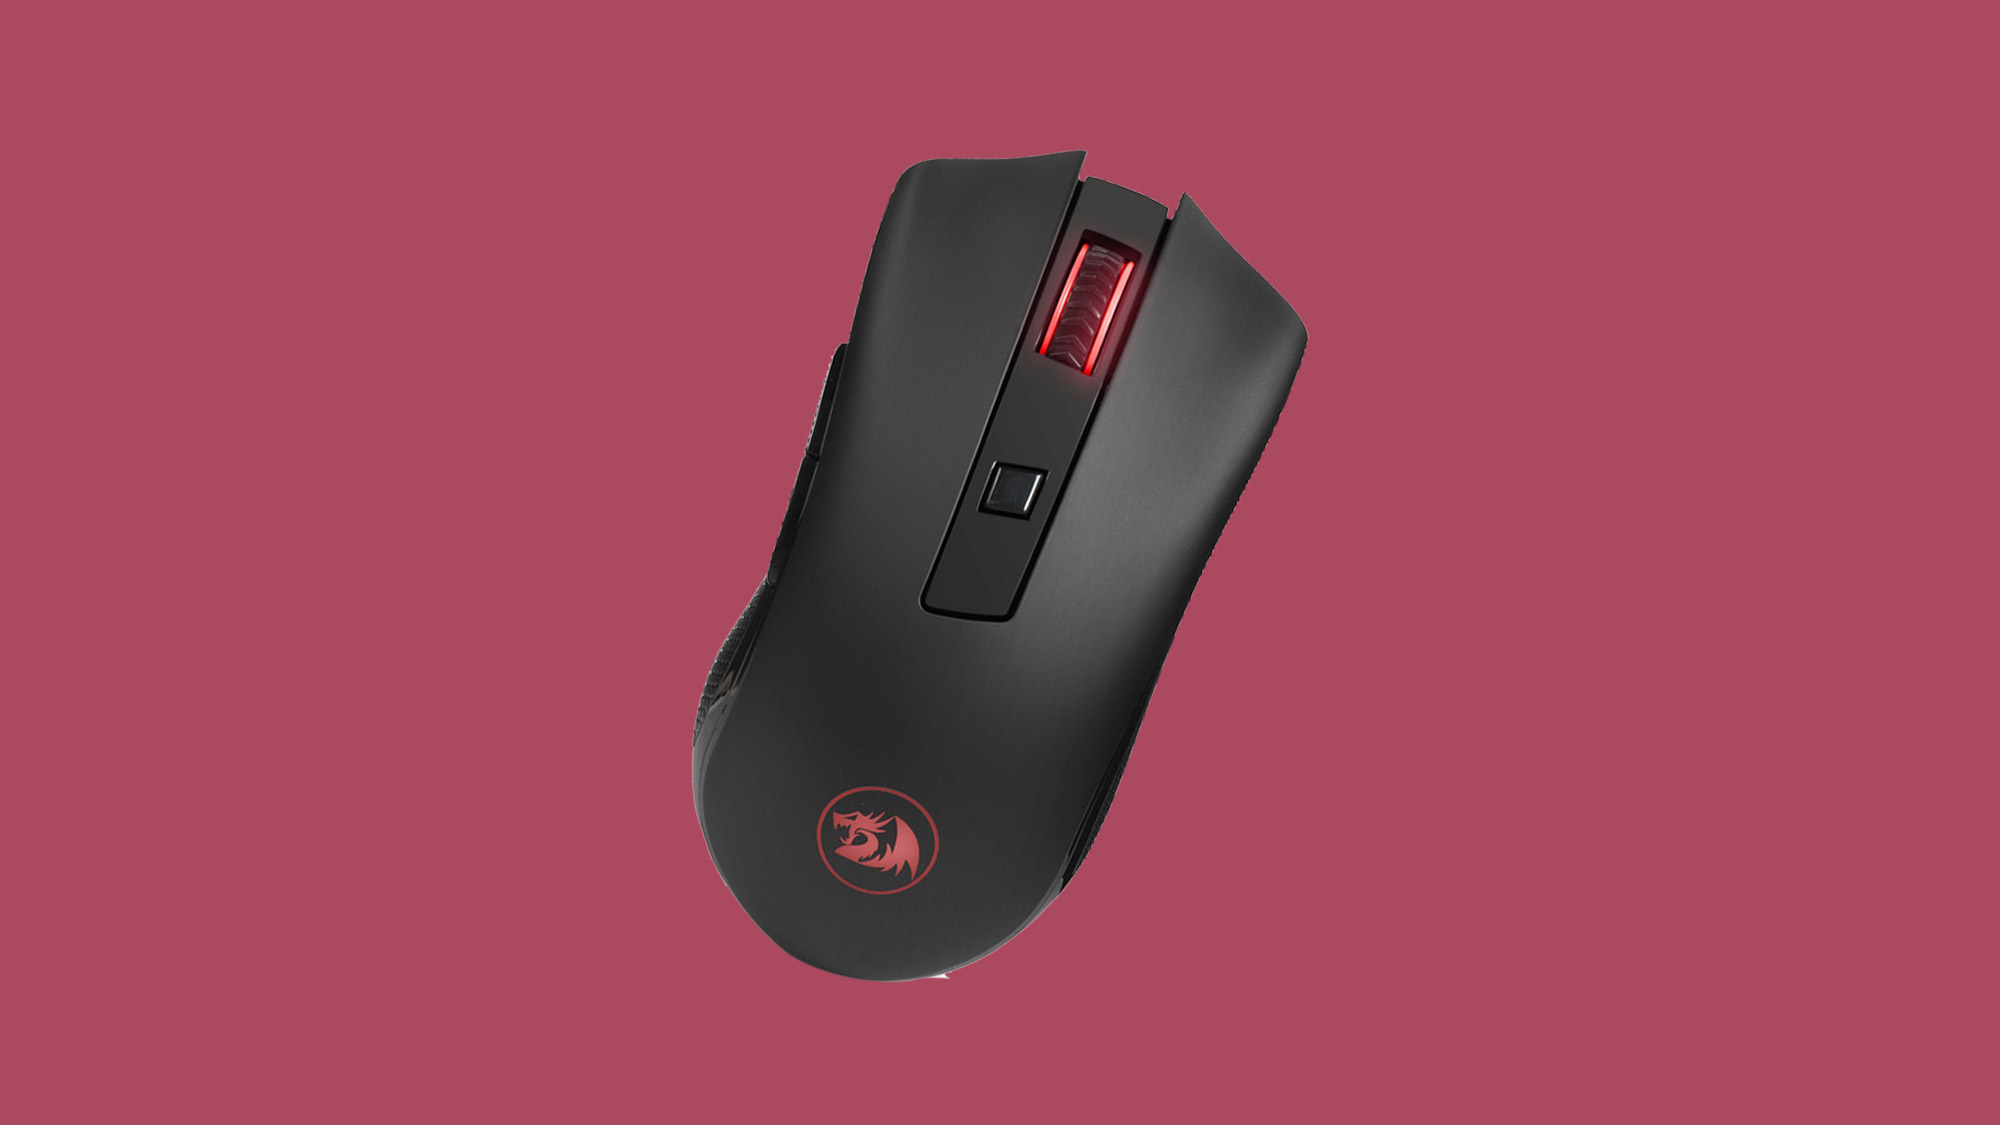 The best cheap gaming mouse deals in January 2020